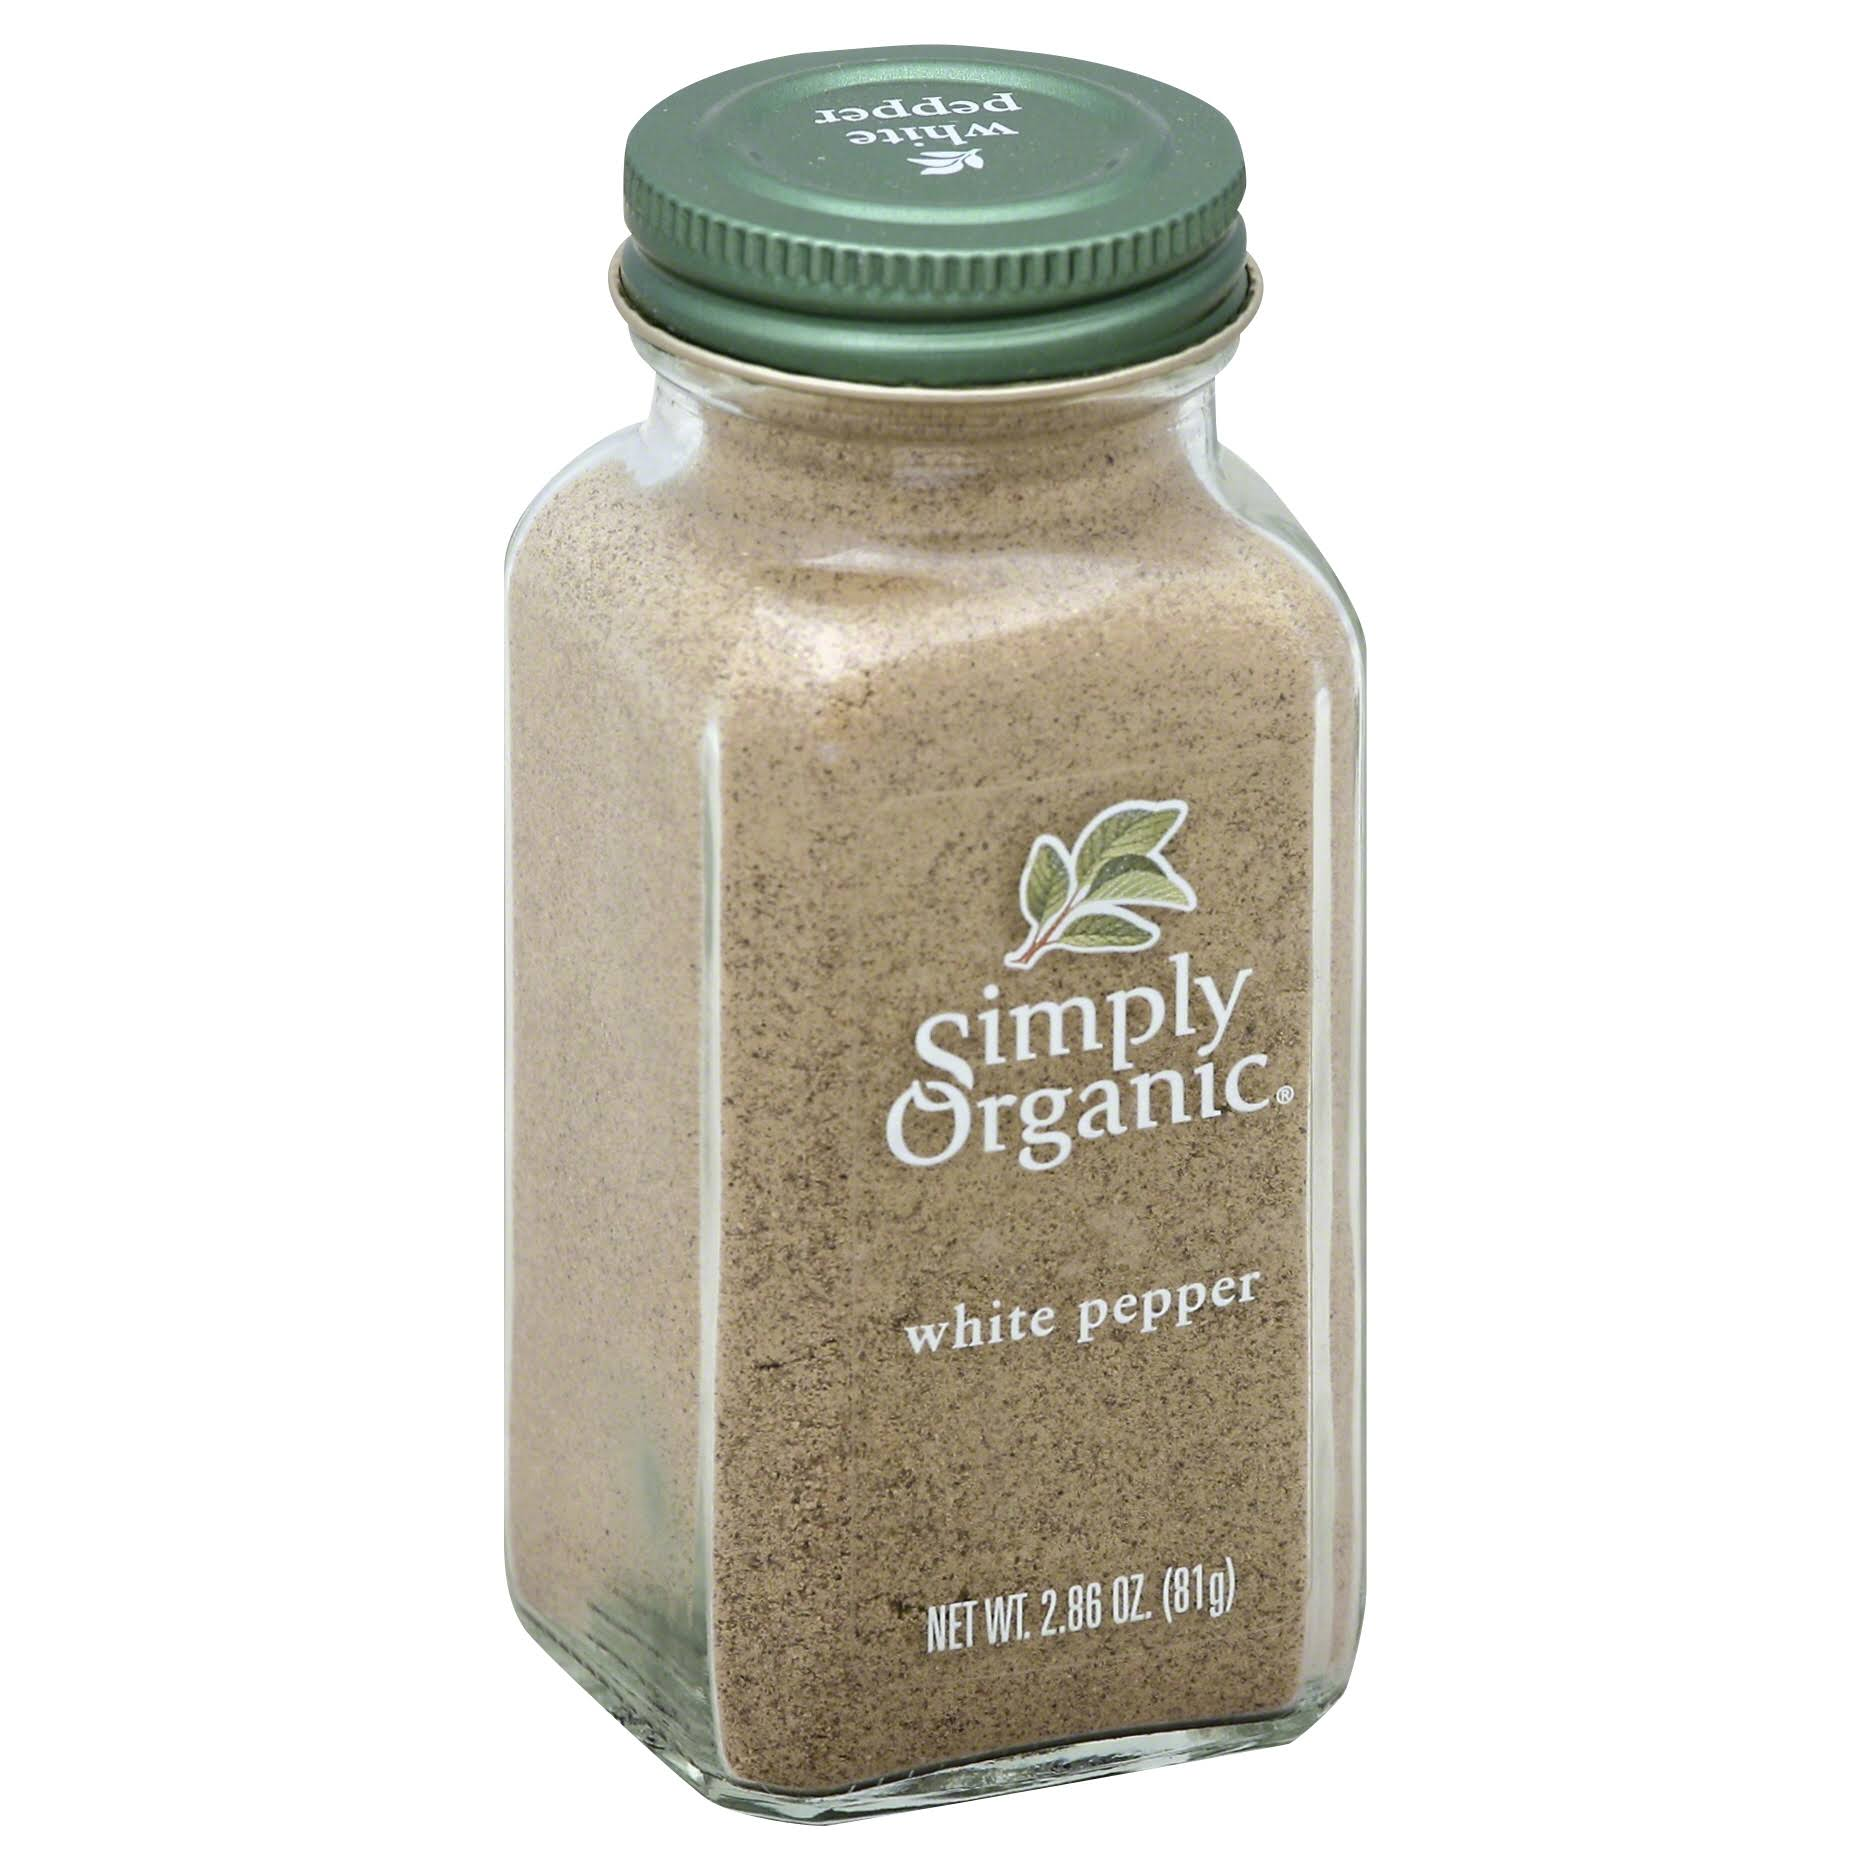 Simply Organic White Pepper - 81g